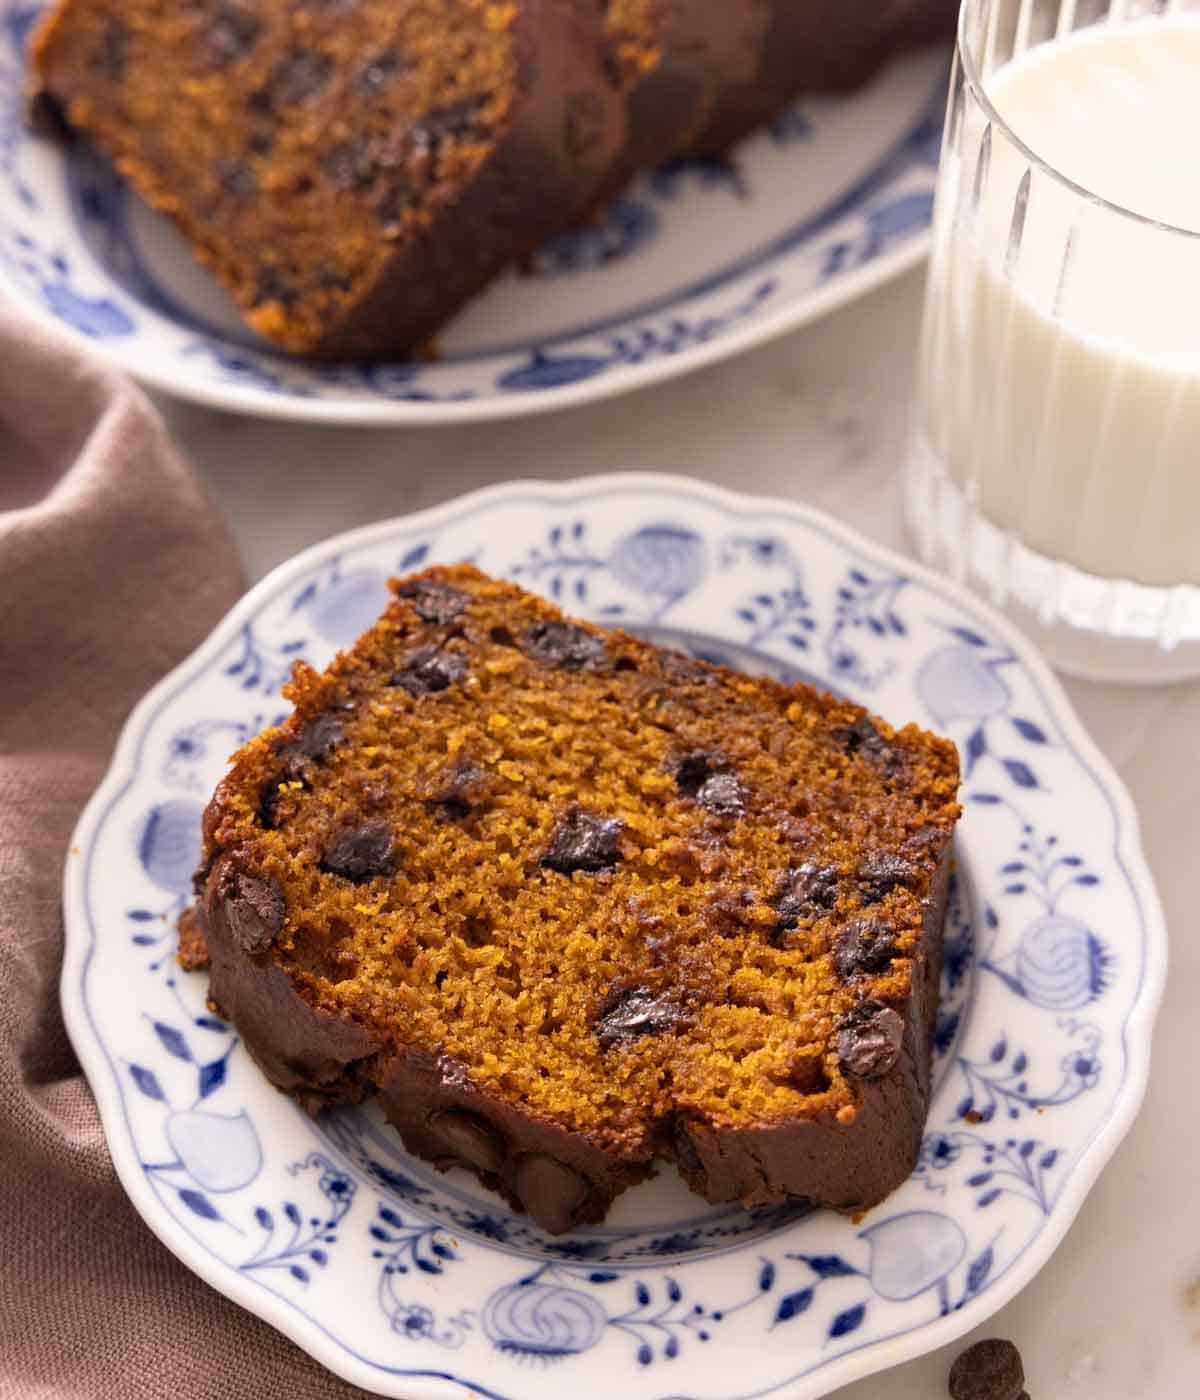 A slice of chocolate chip pumpkin bread on a plate with a cup of milk in the background.